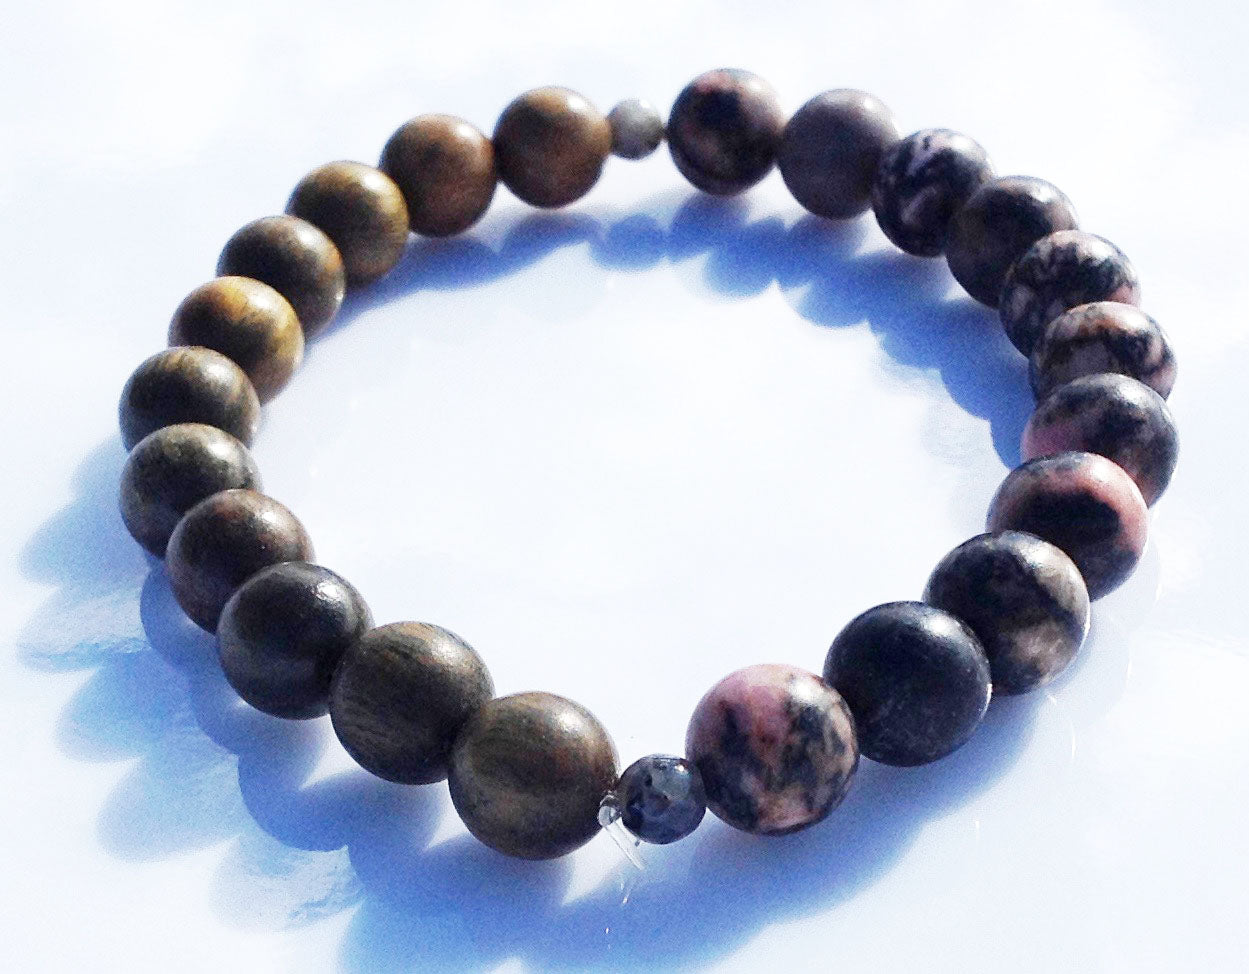 Balance Collection Green Sandalwood & Pink Rhodonite Yoga Meditation Wrist Mala Bracelet Heart Chakra Focus Healing Energy Reiki